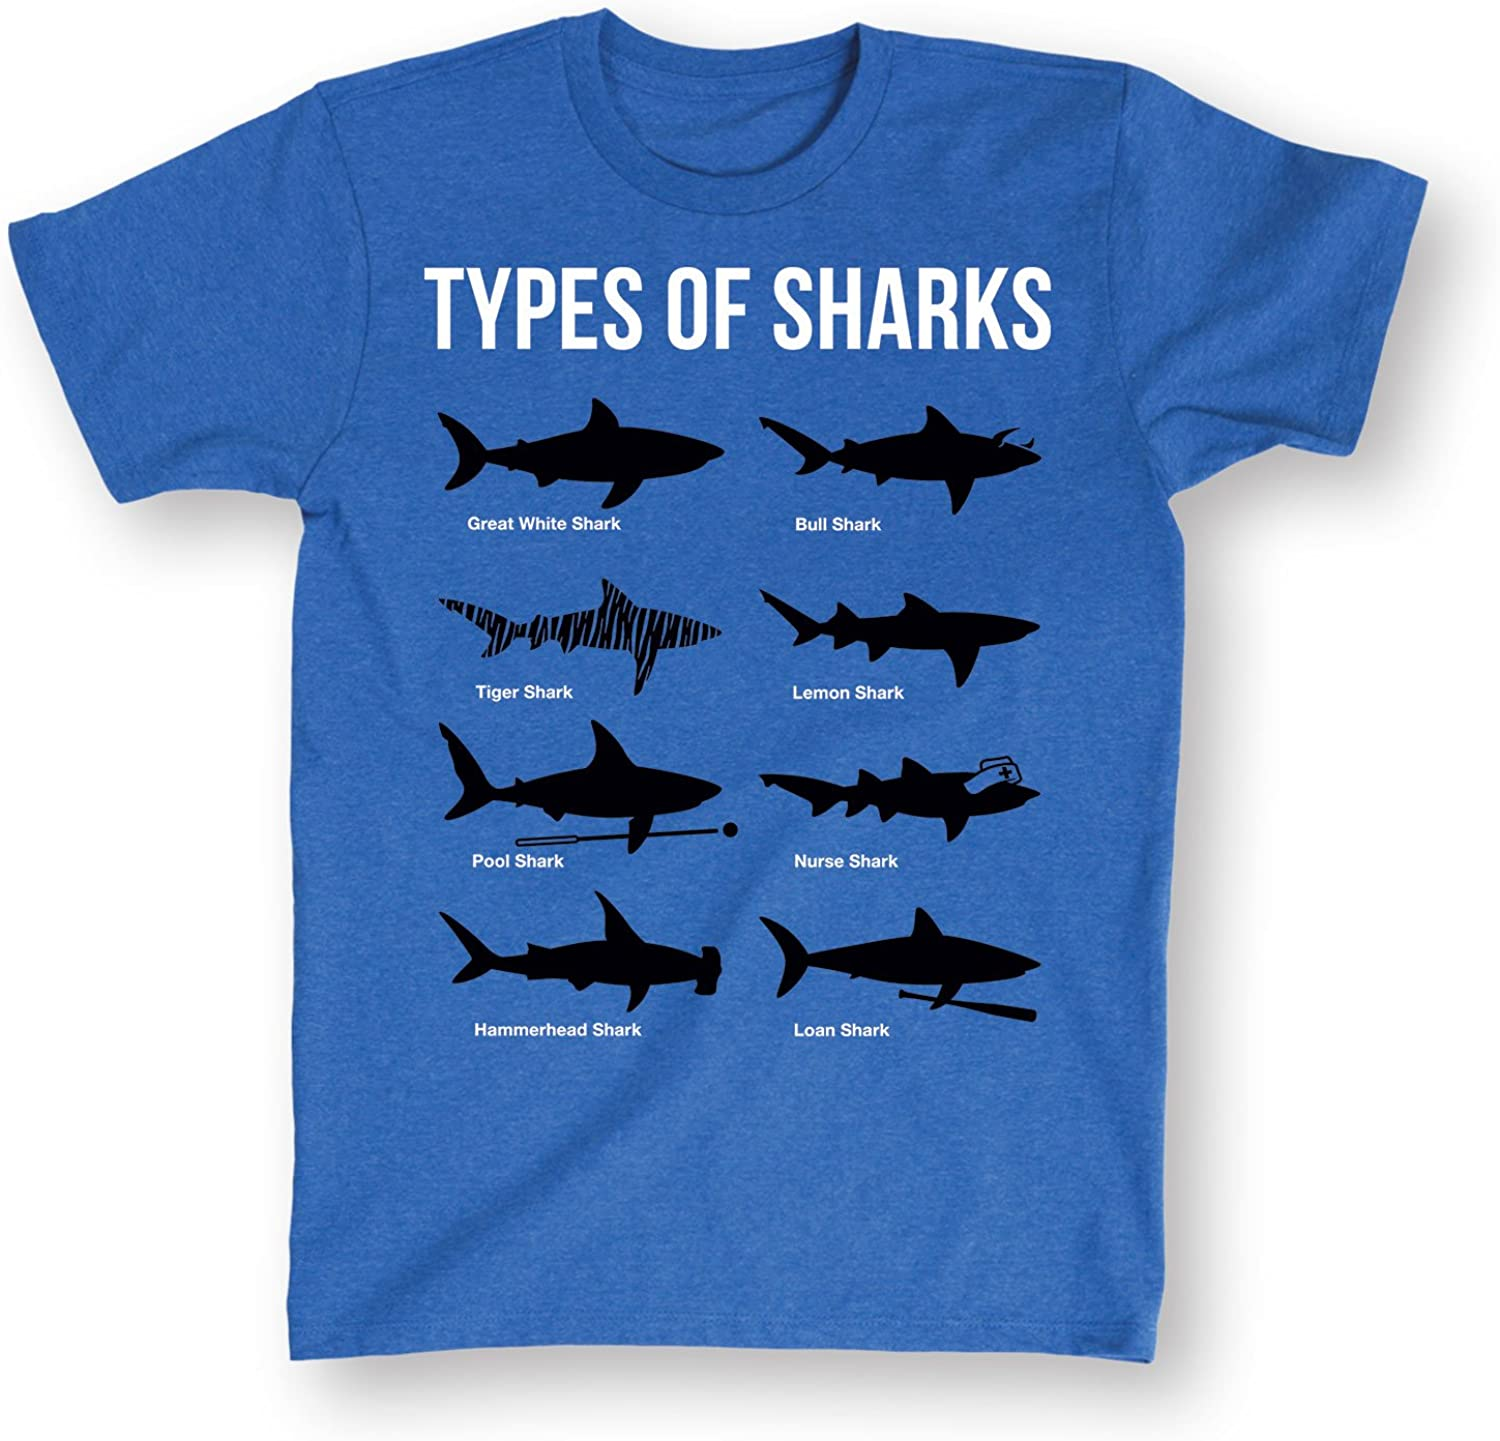 Types of Sharks Funny Blue T-Shirt-Great White Shark Species Shirt